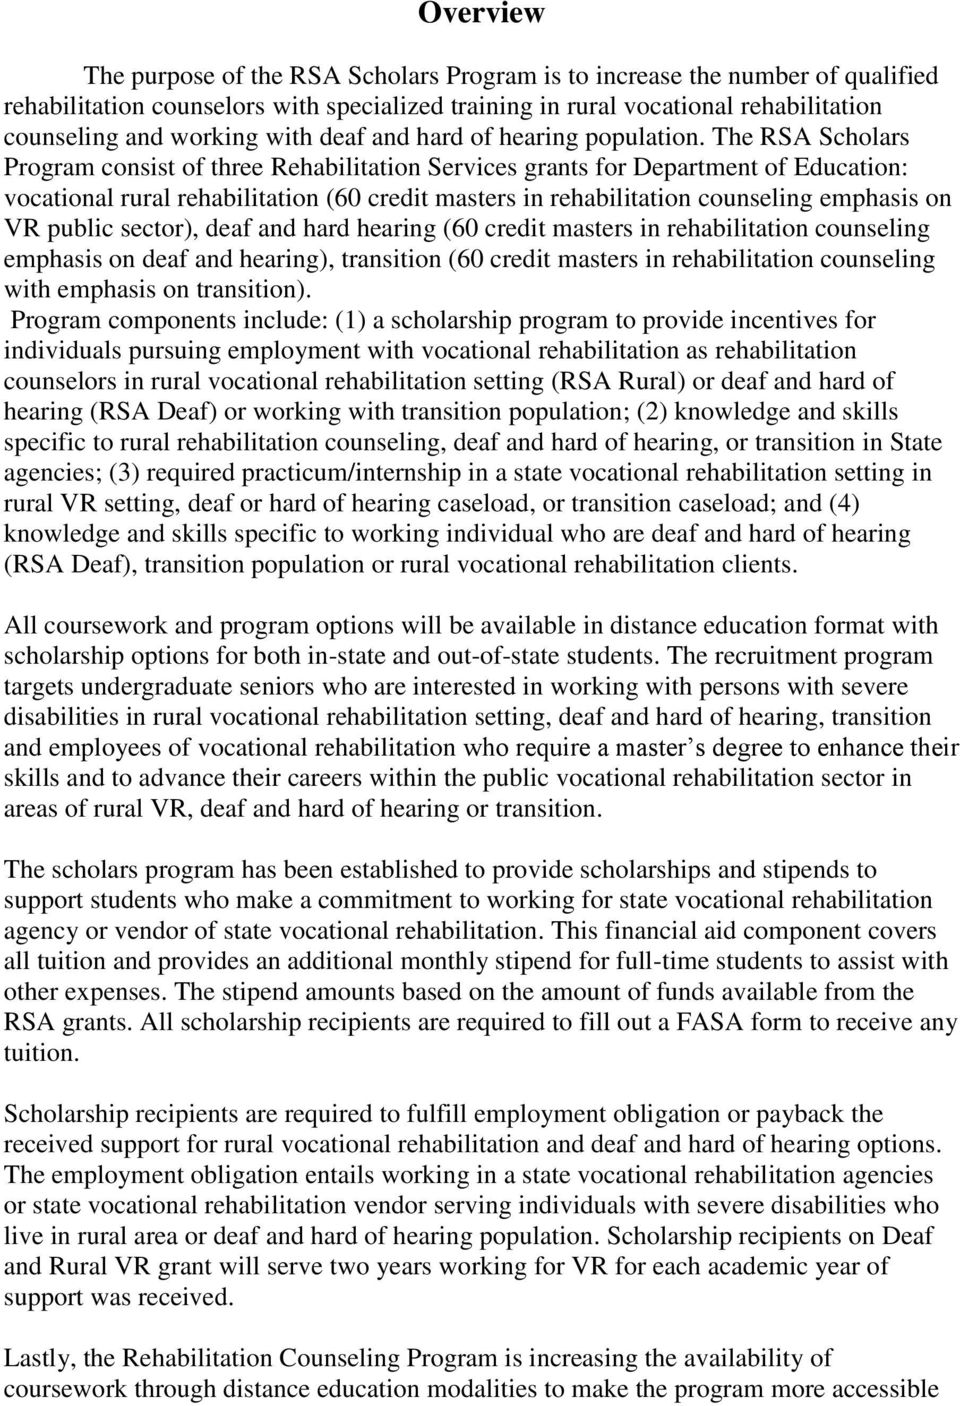 The RSA Scholars Program consist of three Rehabilitation Services grants for Department of Education: vocational rural rehabilitation (60 credit masters in rehabilitation counseling emphasis on VR